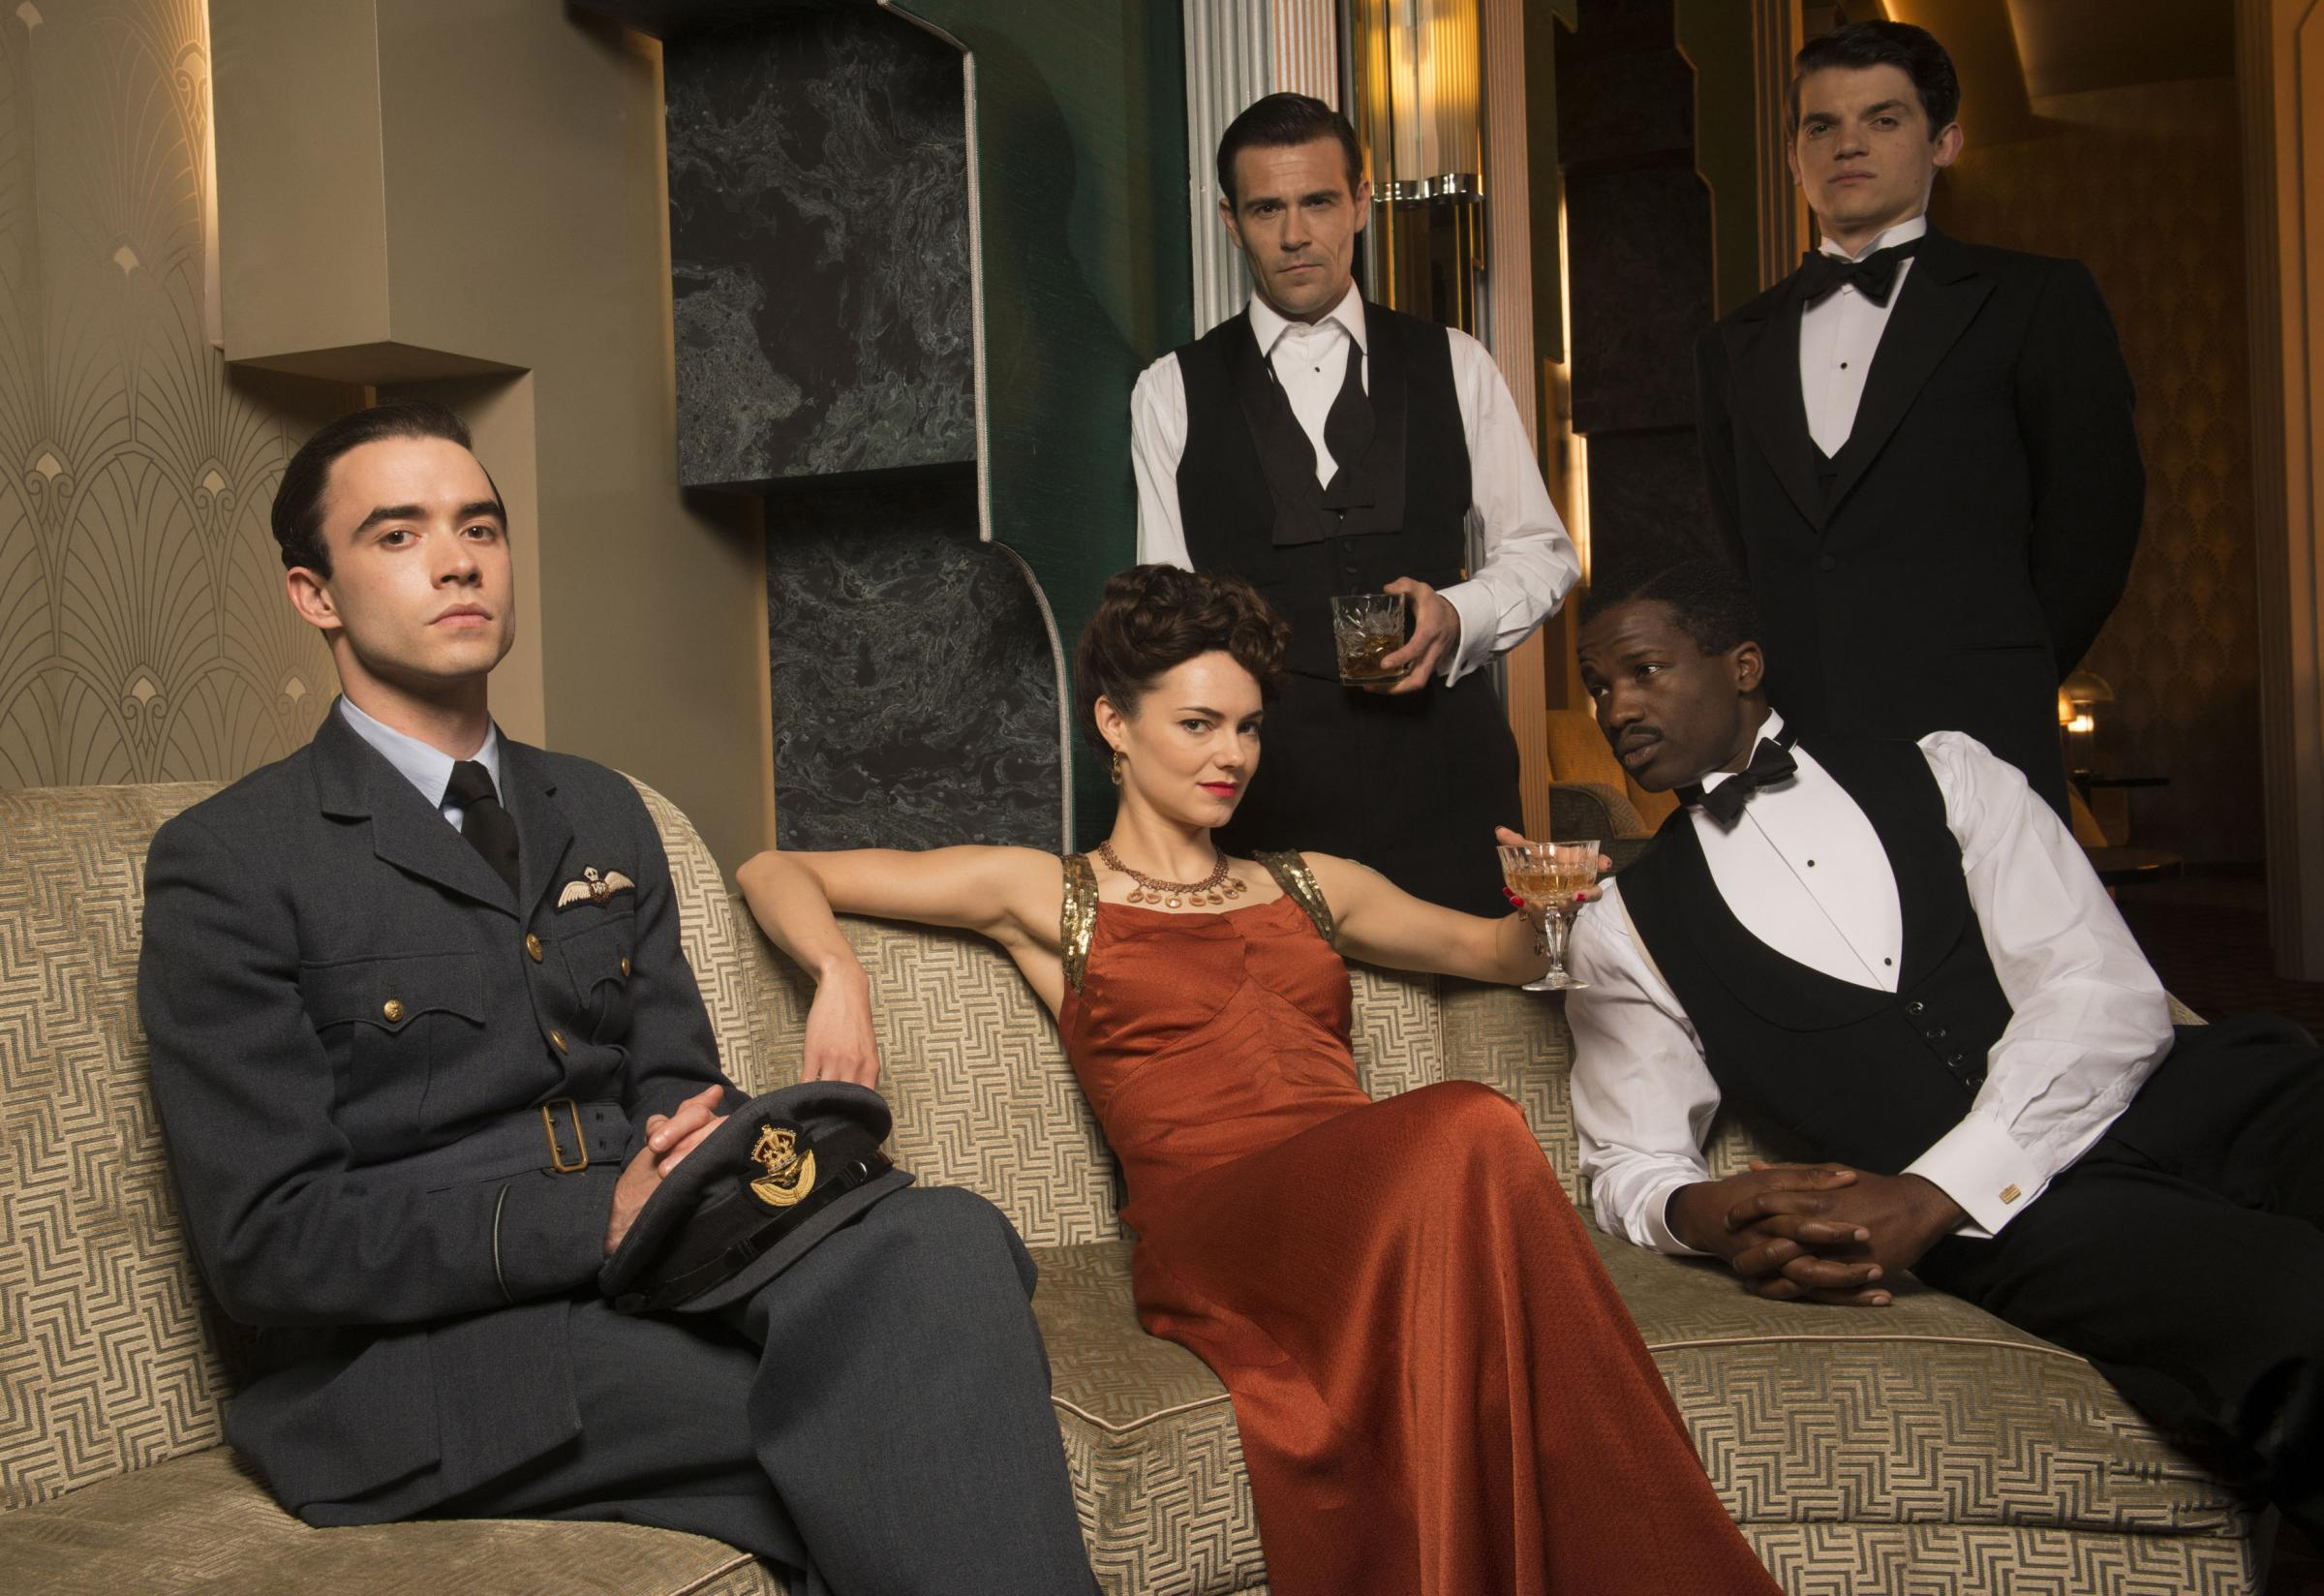 The Halcyon gets rave reviews as it's branded the 40s Downton Abbey (but better)